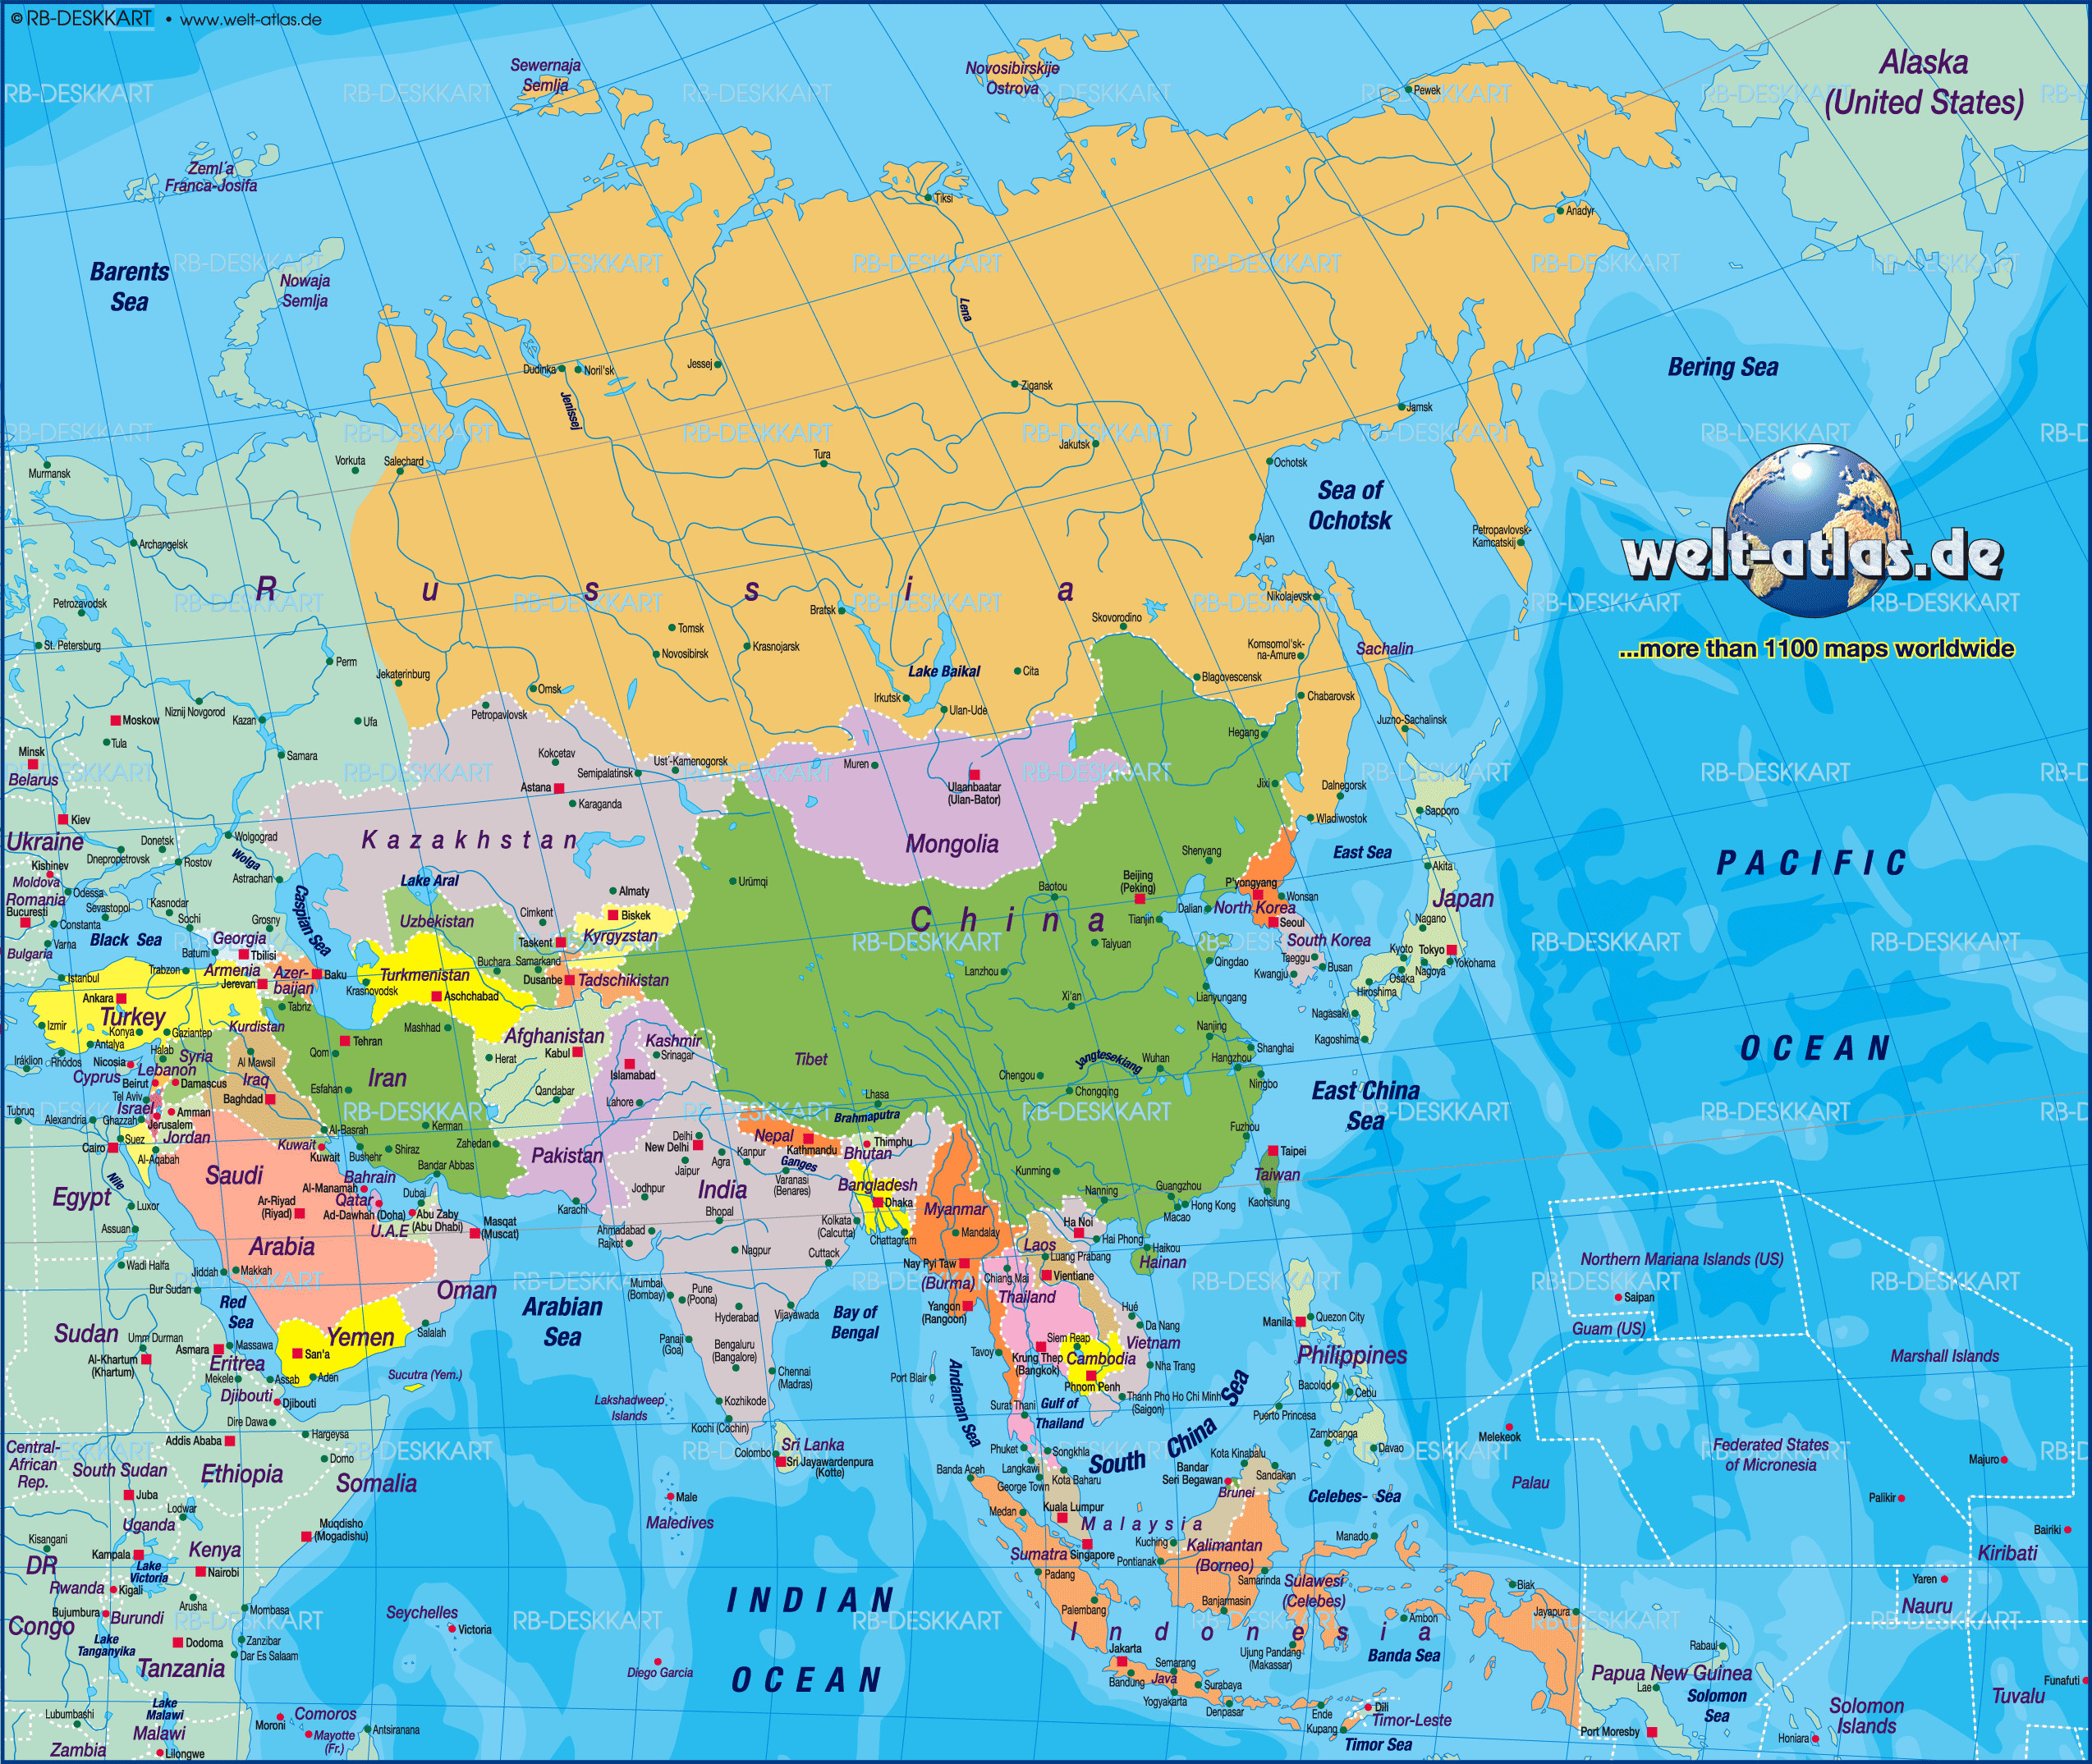 World map desktop wallpapers 62 background pictures 1920x1080 typography world map hd wallpaper 3008 hq desktop wallpapers 1920x1080 gumiabroncs Choice Image